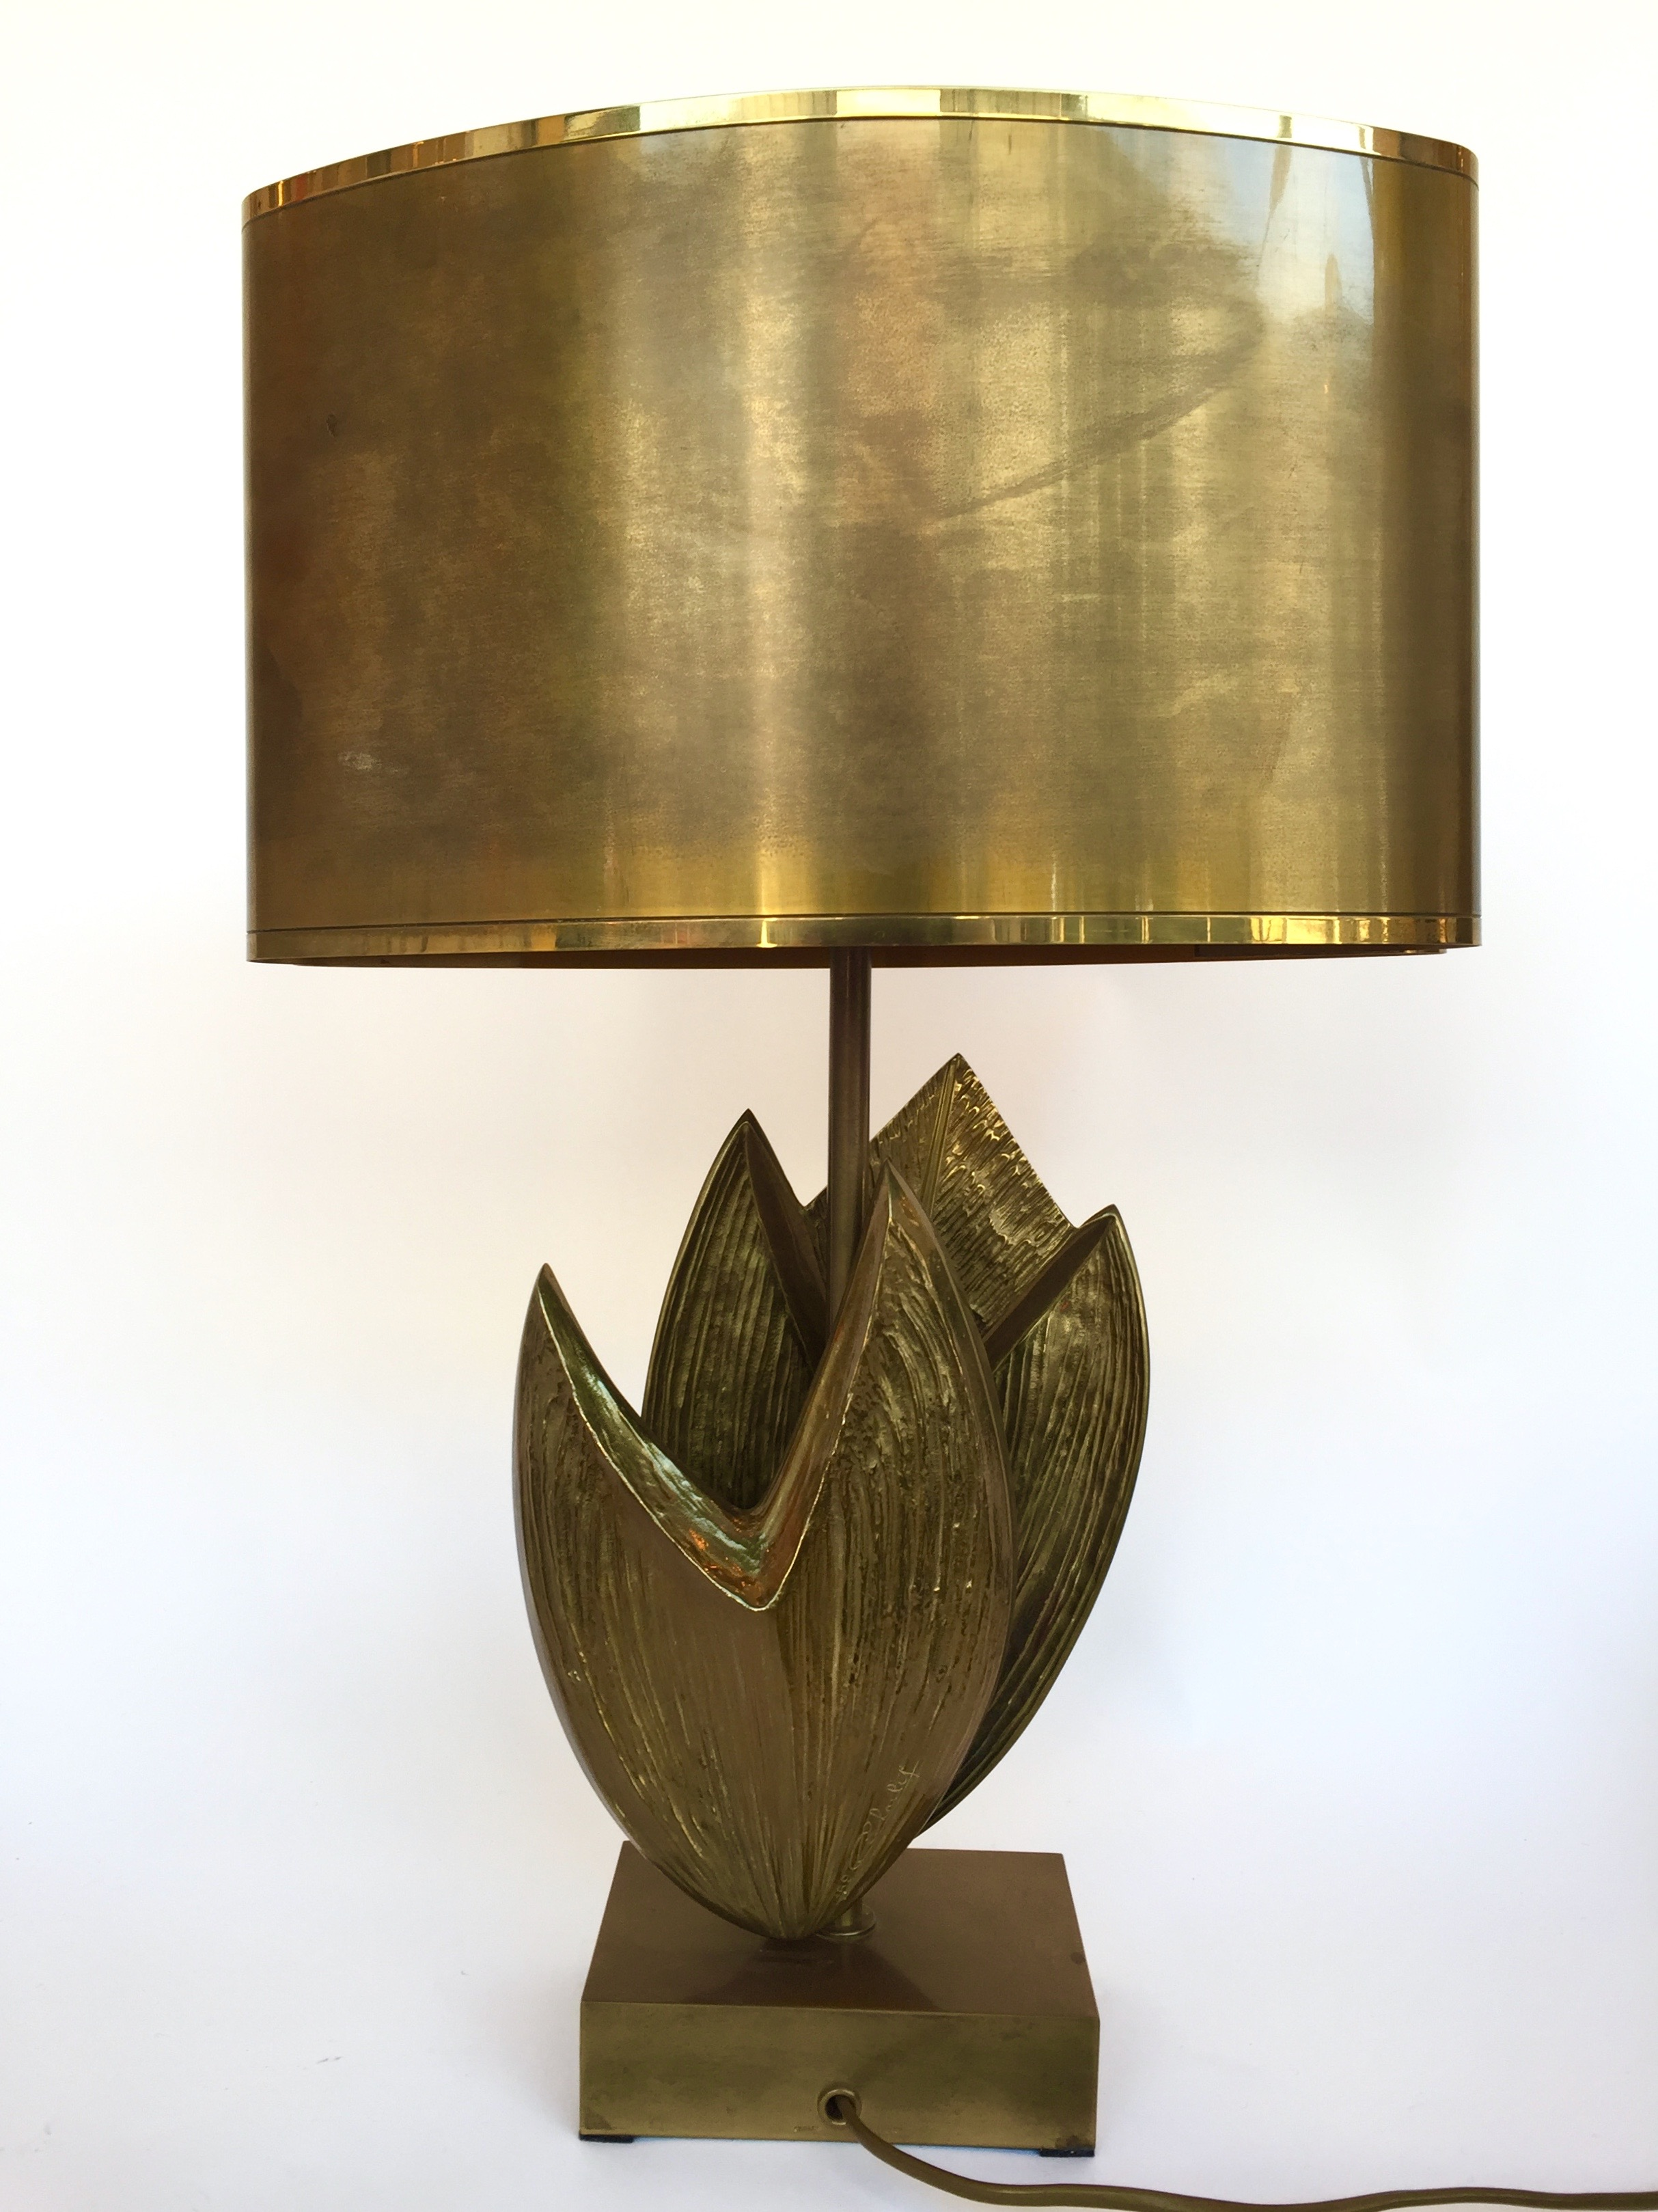 Lamp Cythere By Maison Charles France 1970s Paul Bert Serpette